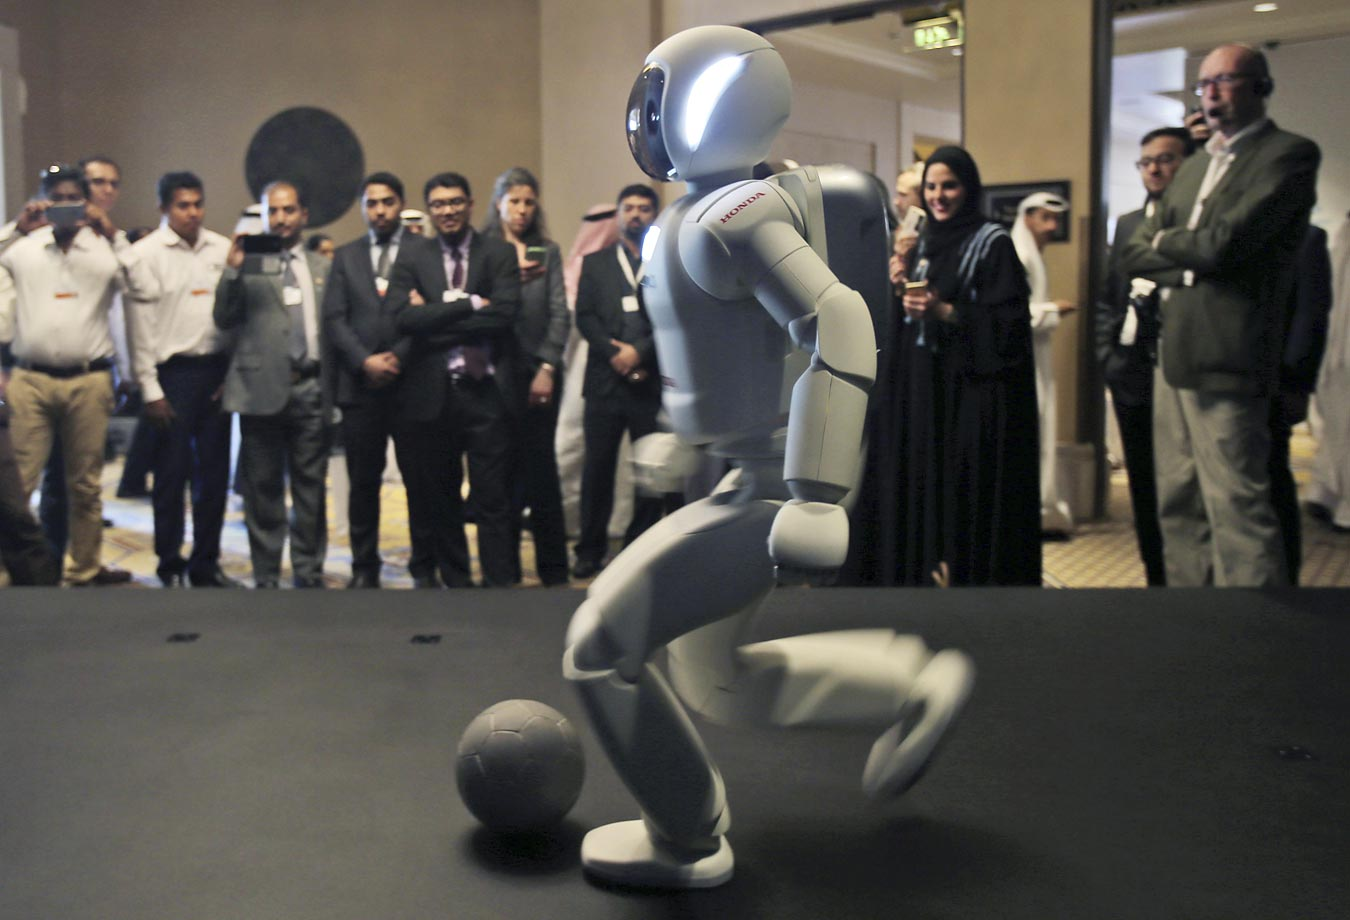 A humanoid robot designed and developed by Honda and named Asimo plays football for the audience at the end of the company's presentation during the last day of the Government Summit in Dubai.